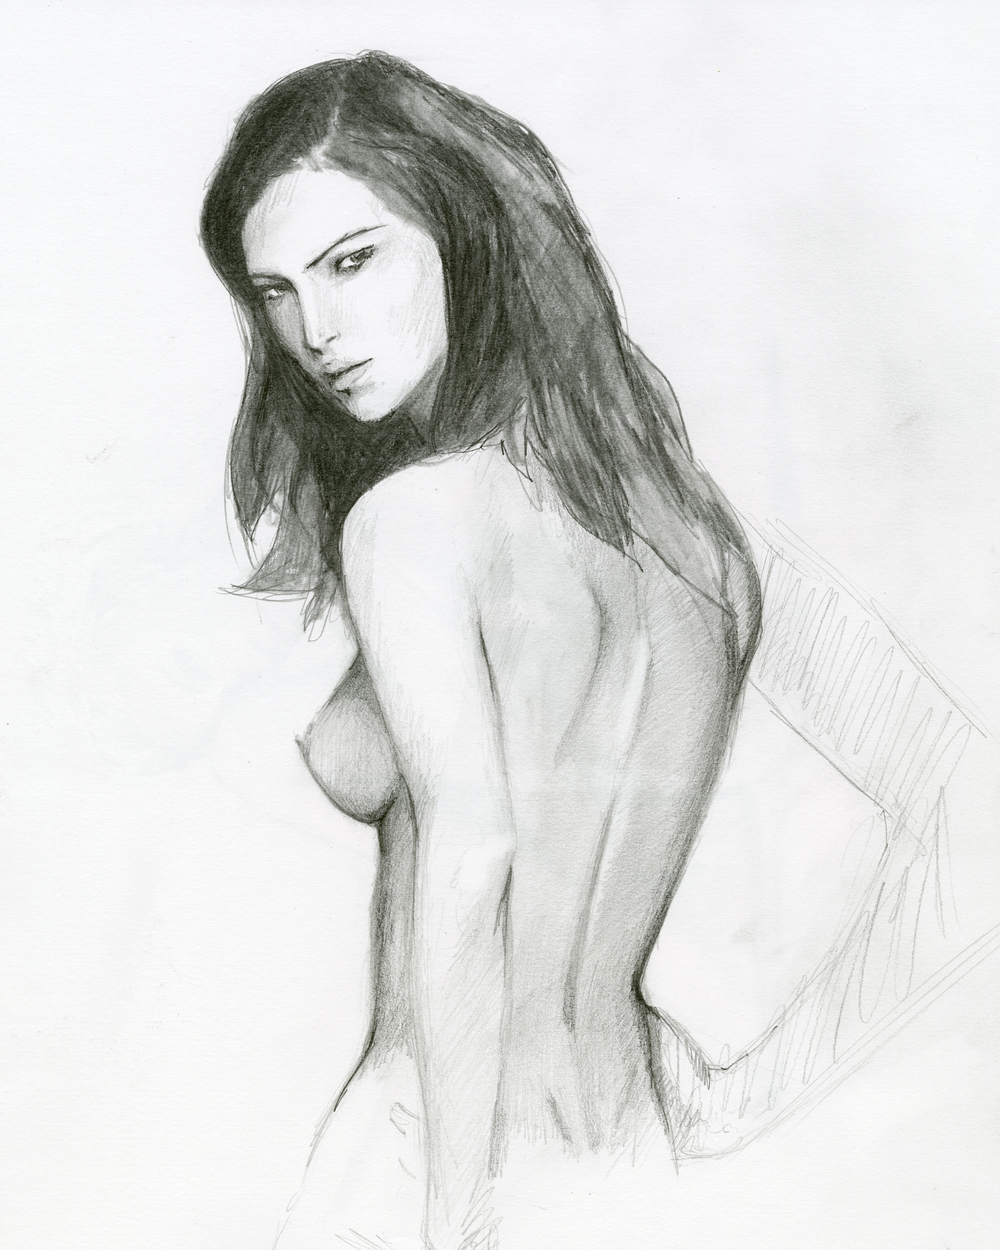 sketch-girlback_david-jackowski_alvatron-studio.jpg